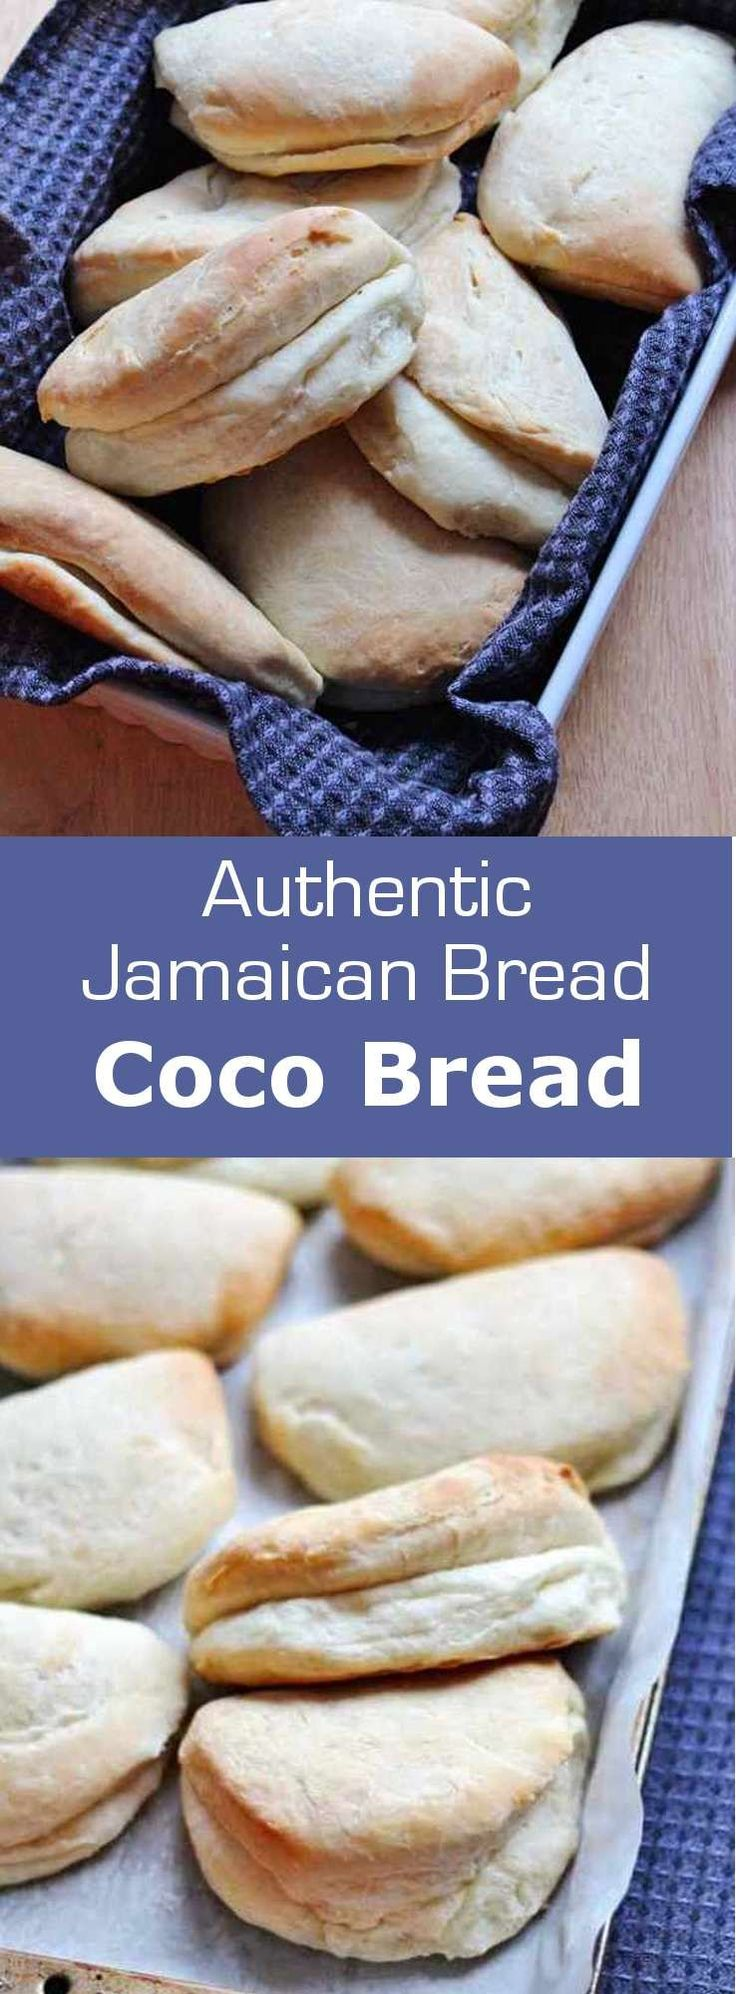 Coco bread is a coconut milk bread that is popular in Jamaica as well as in…